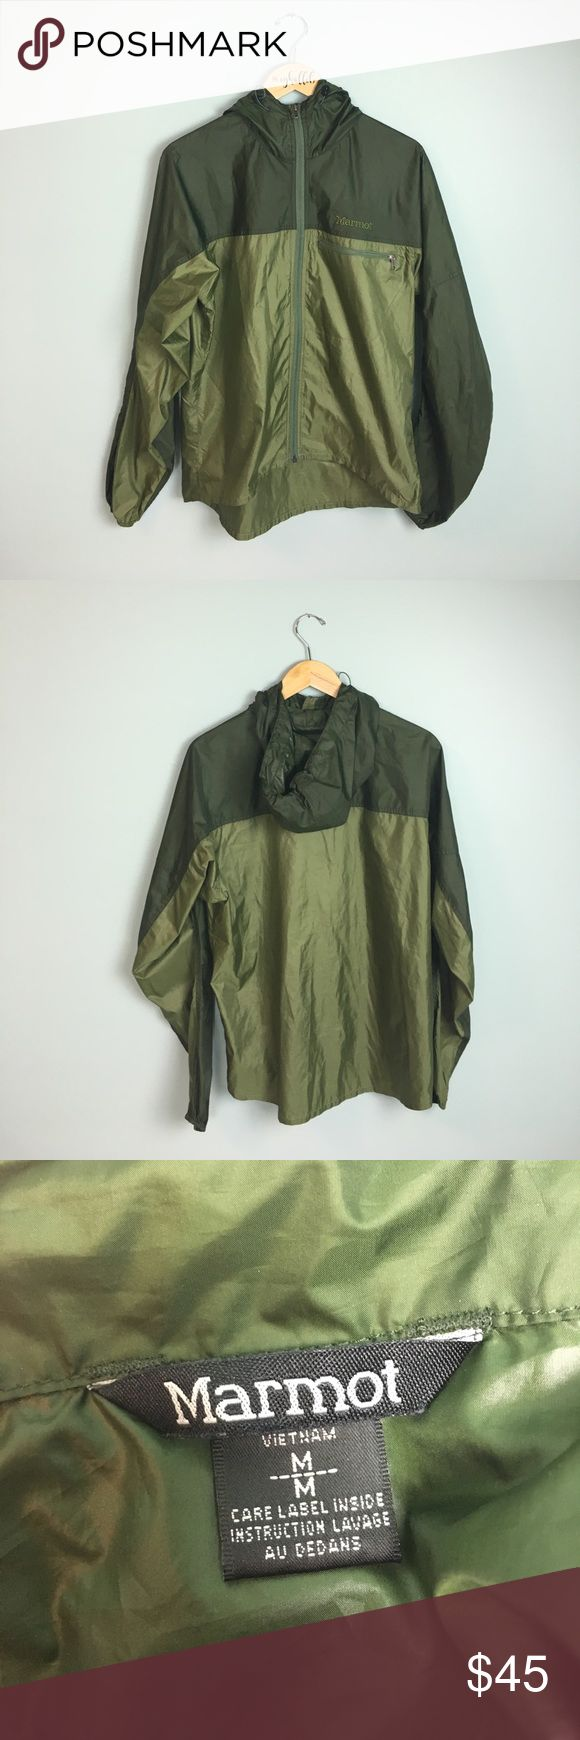 """Marmot PreCip Jacket in Two Toned Green - M Ideal for hiking or the outdoors. Super lightweight!  Marmot brand, size medium.  Measurements: Armpit to Armpit: 22.5"""" Length Base of Neck to Bottom: 27.5"""" Arm Inseam: 23""""  Gently used with light wear. In great shape! Style # J 8910-1-MPT  Closet policies: ❌ No trades, no holds ✅ I consider all reasonable offers 🛍Bundle and save 15% 📫It is my goal to ship same day or next business day ❓If you have questions please ask!  Inventory code: 1017108d…"""